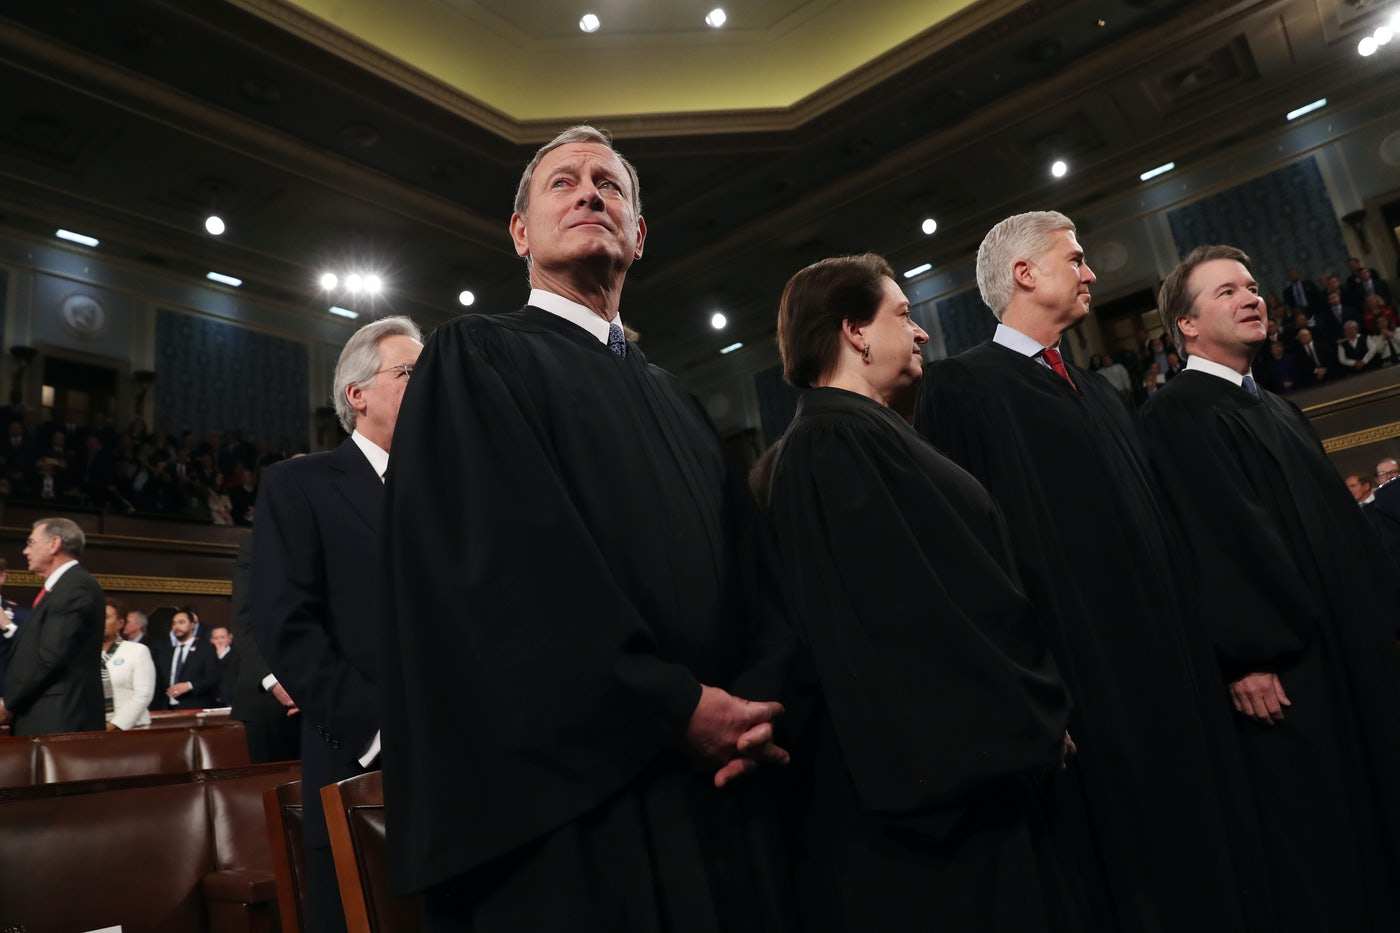 Chief Justice John Roberts waits to hear President Donald Trump deliver the State of the Union address.